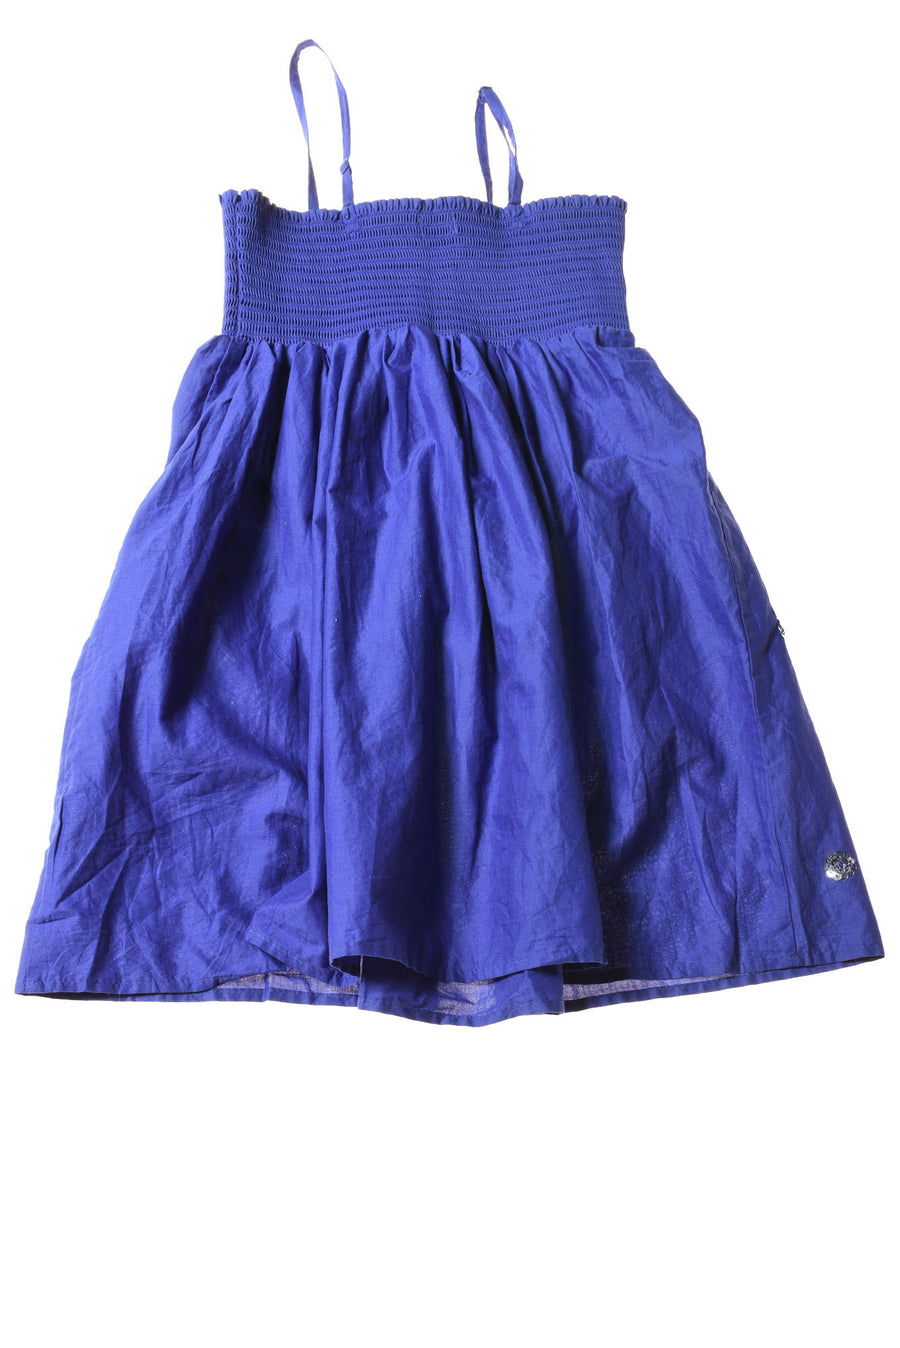 NEW The Children's Place Girl's Dress 10 Blue